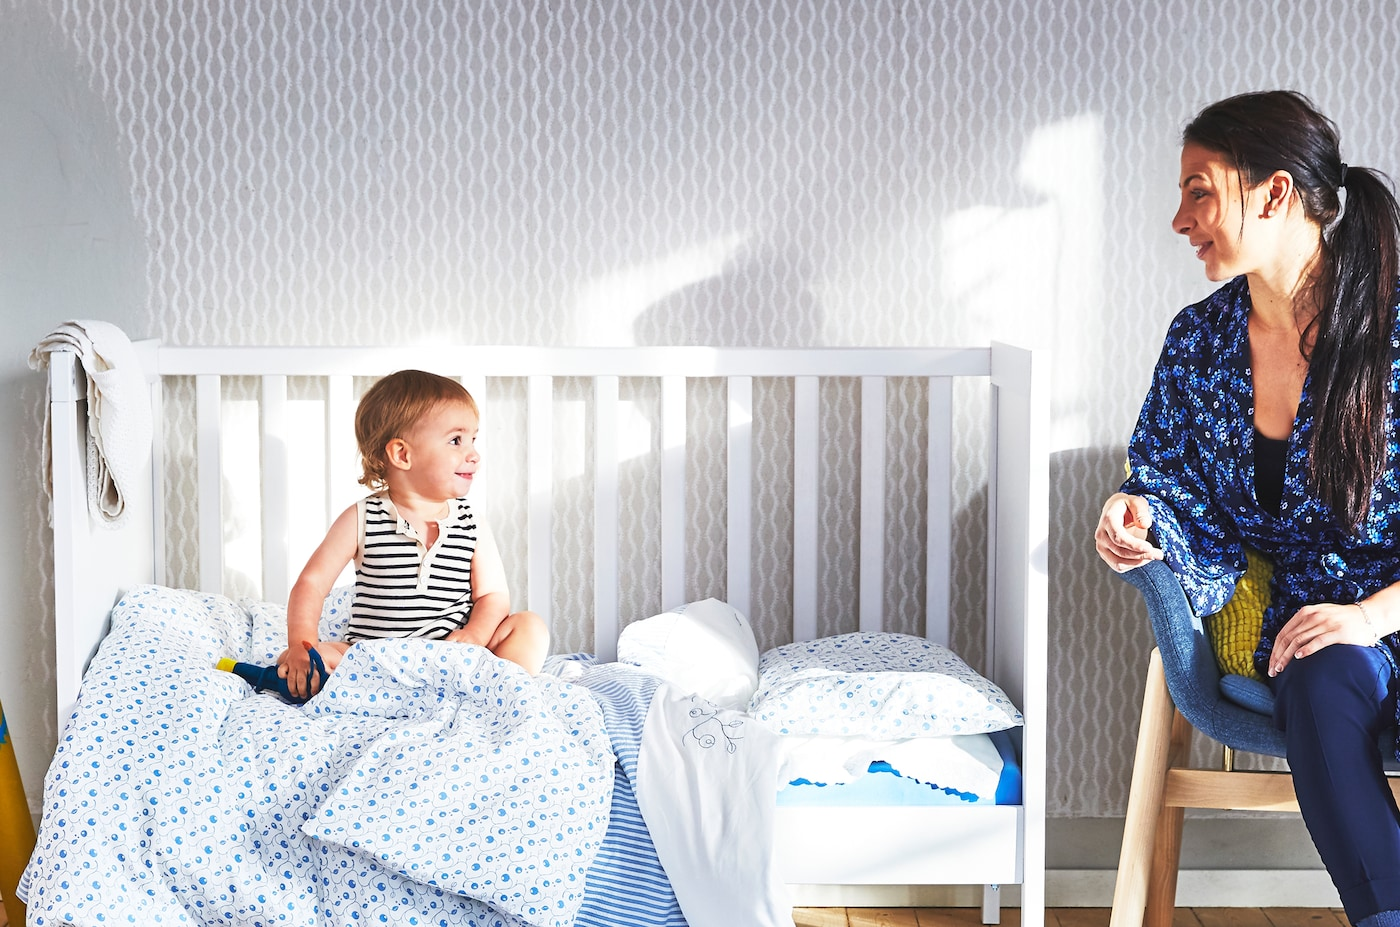 Mother sitting on a wooden chair and baby sitting in white open-sided cot with blue textiles both looking at each other.